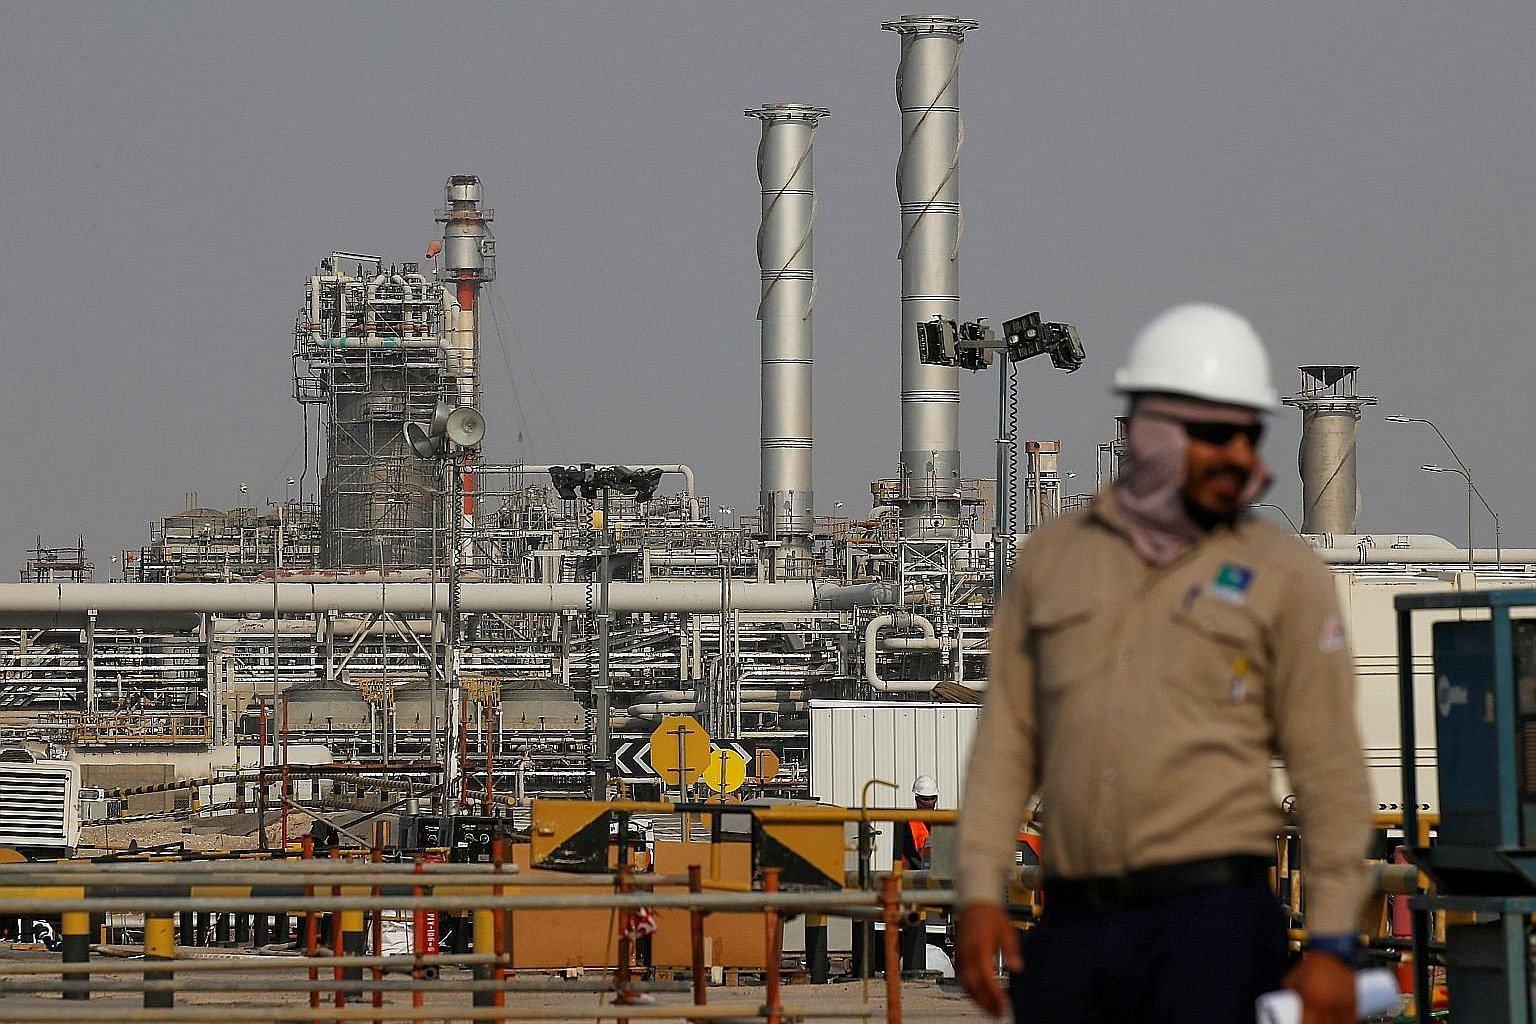 A Saudi Aramco oil facility in Abqaiq, Saudi Arabia. Aramco priced its IPO at 32 riyals per share, the top of its indicative range, the firm said. At that level, it has a market valuation of US$1.7 trillion, comfortably overtaking Apple as the world'